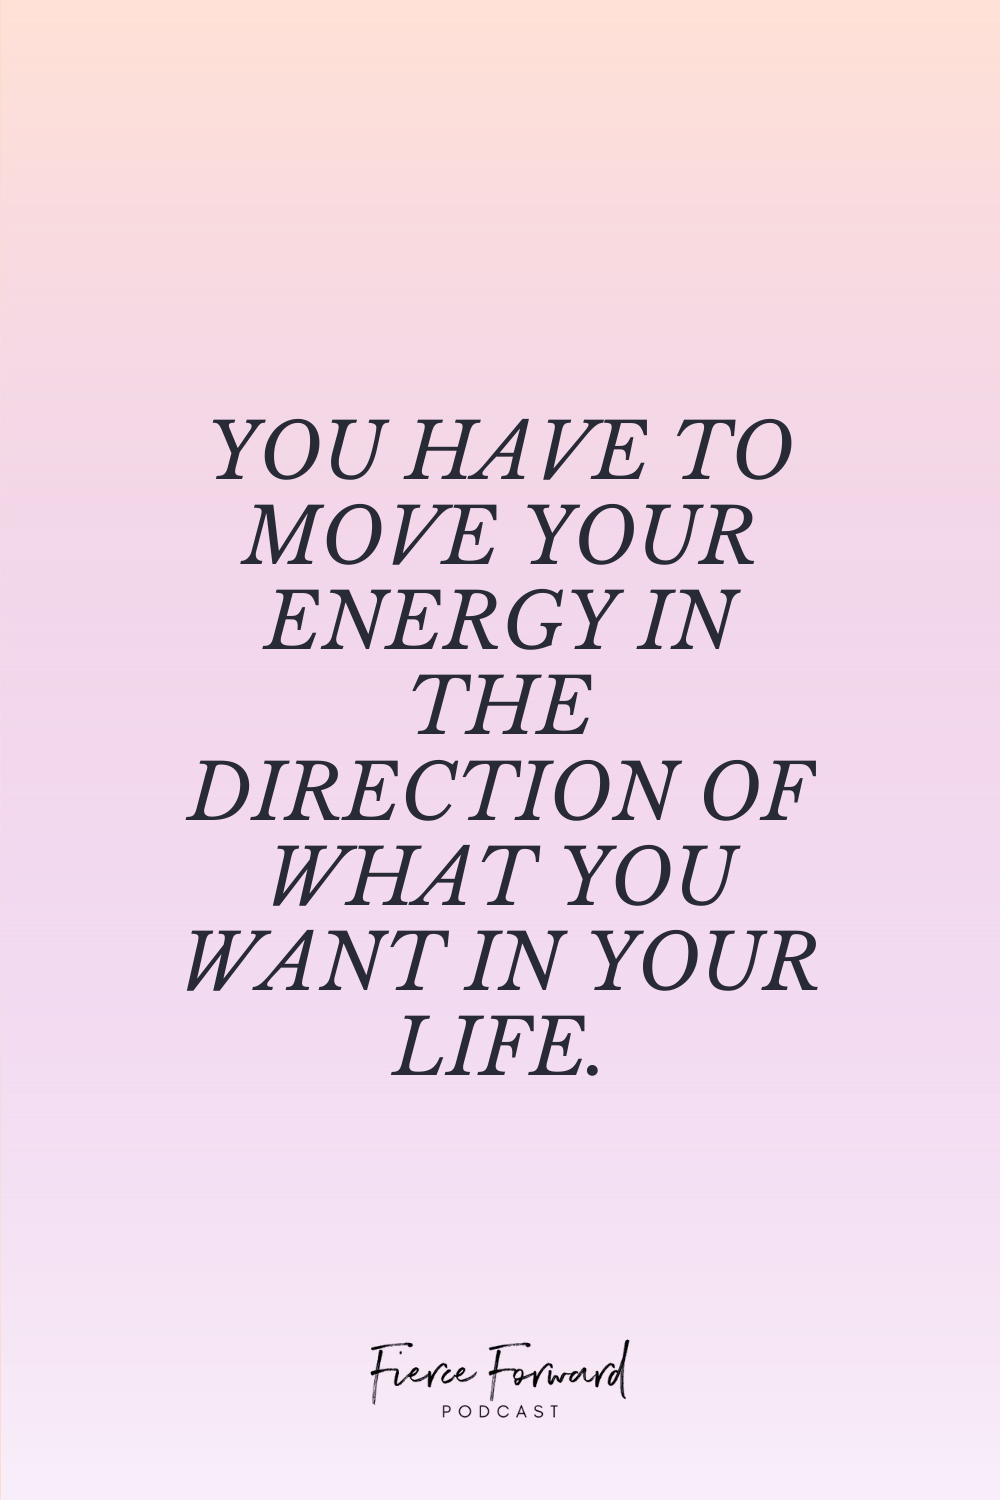 You have to move your energy in the direction of what you want in your life.